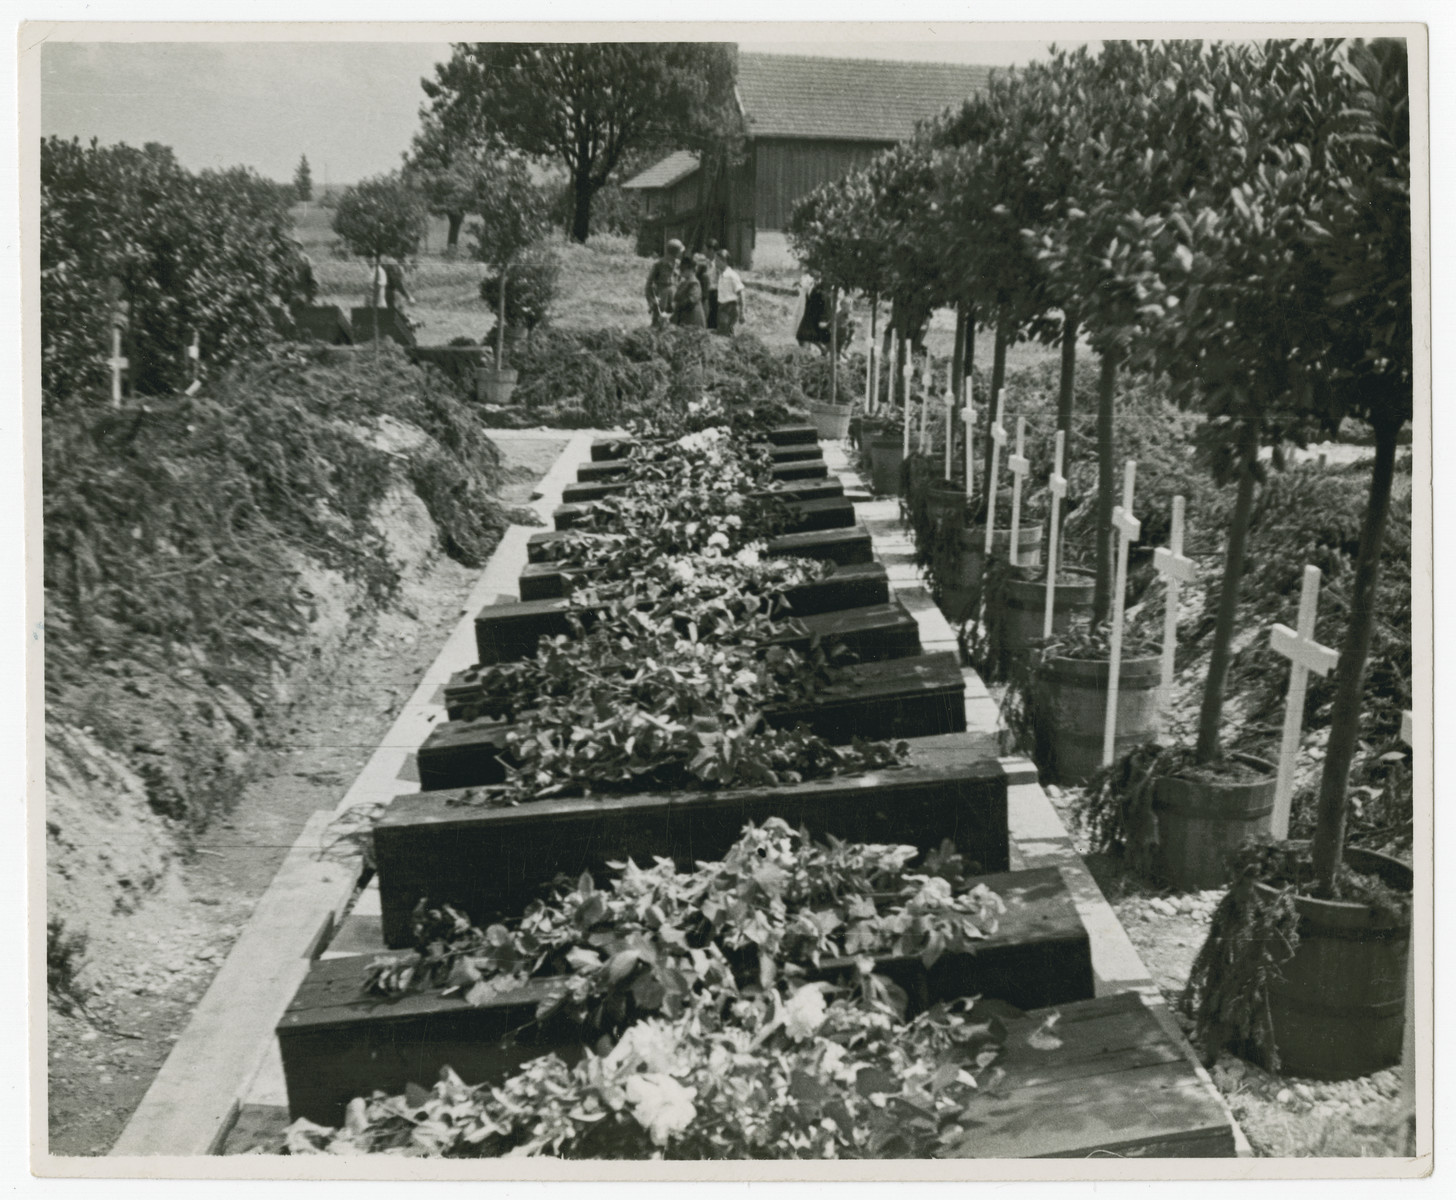 View of coffins ready for reburial holding corpses exhumed from a mass grave.